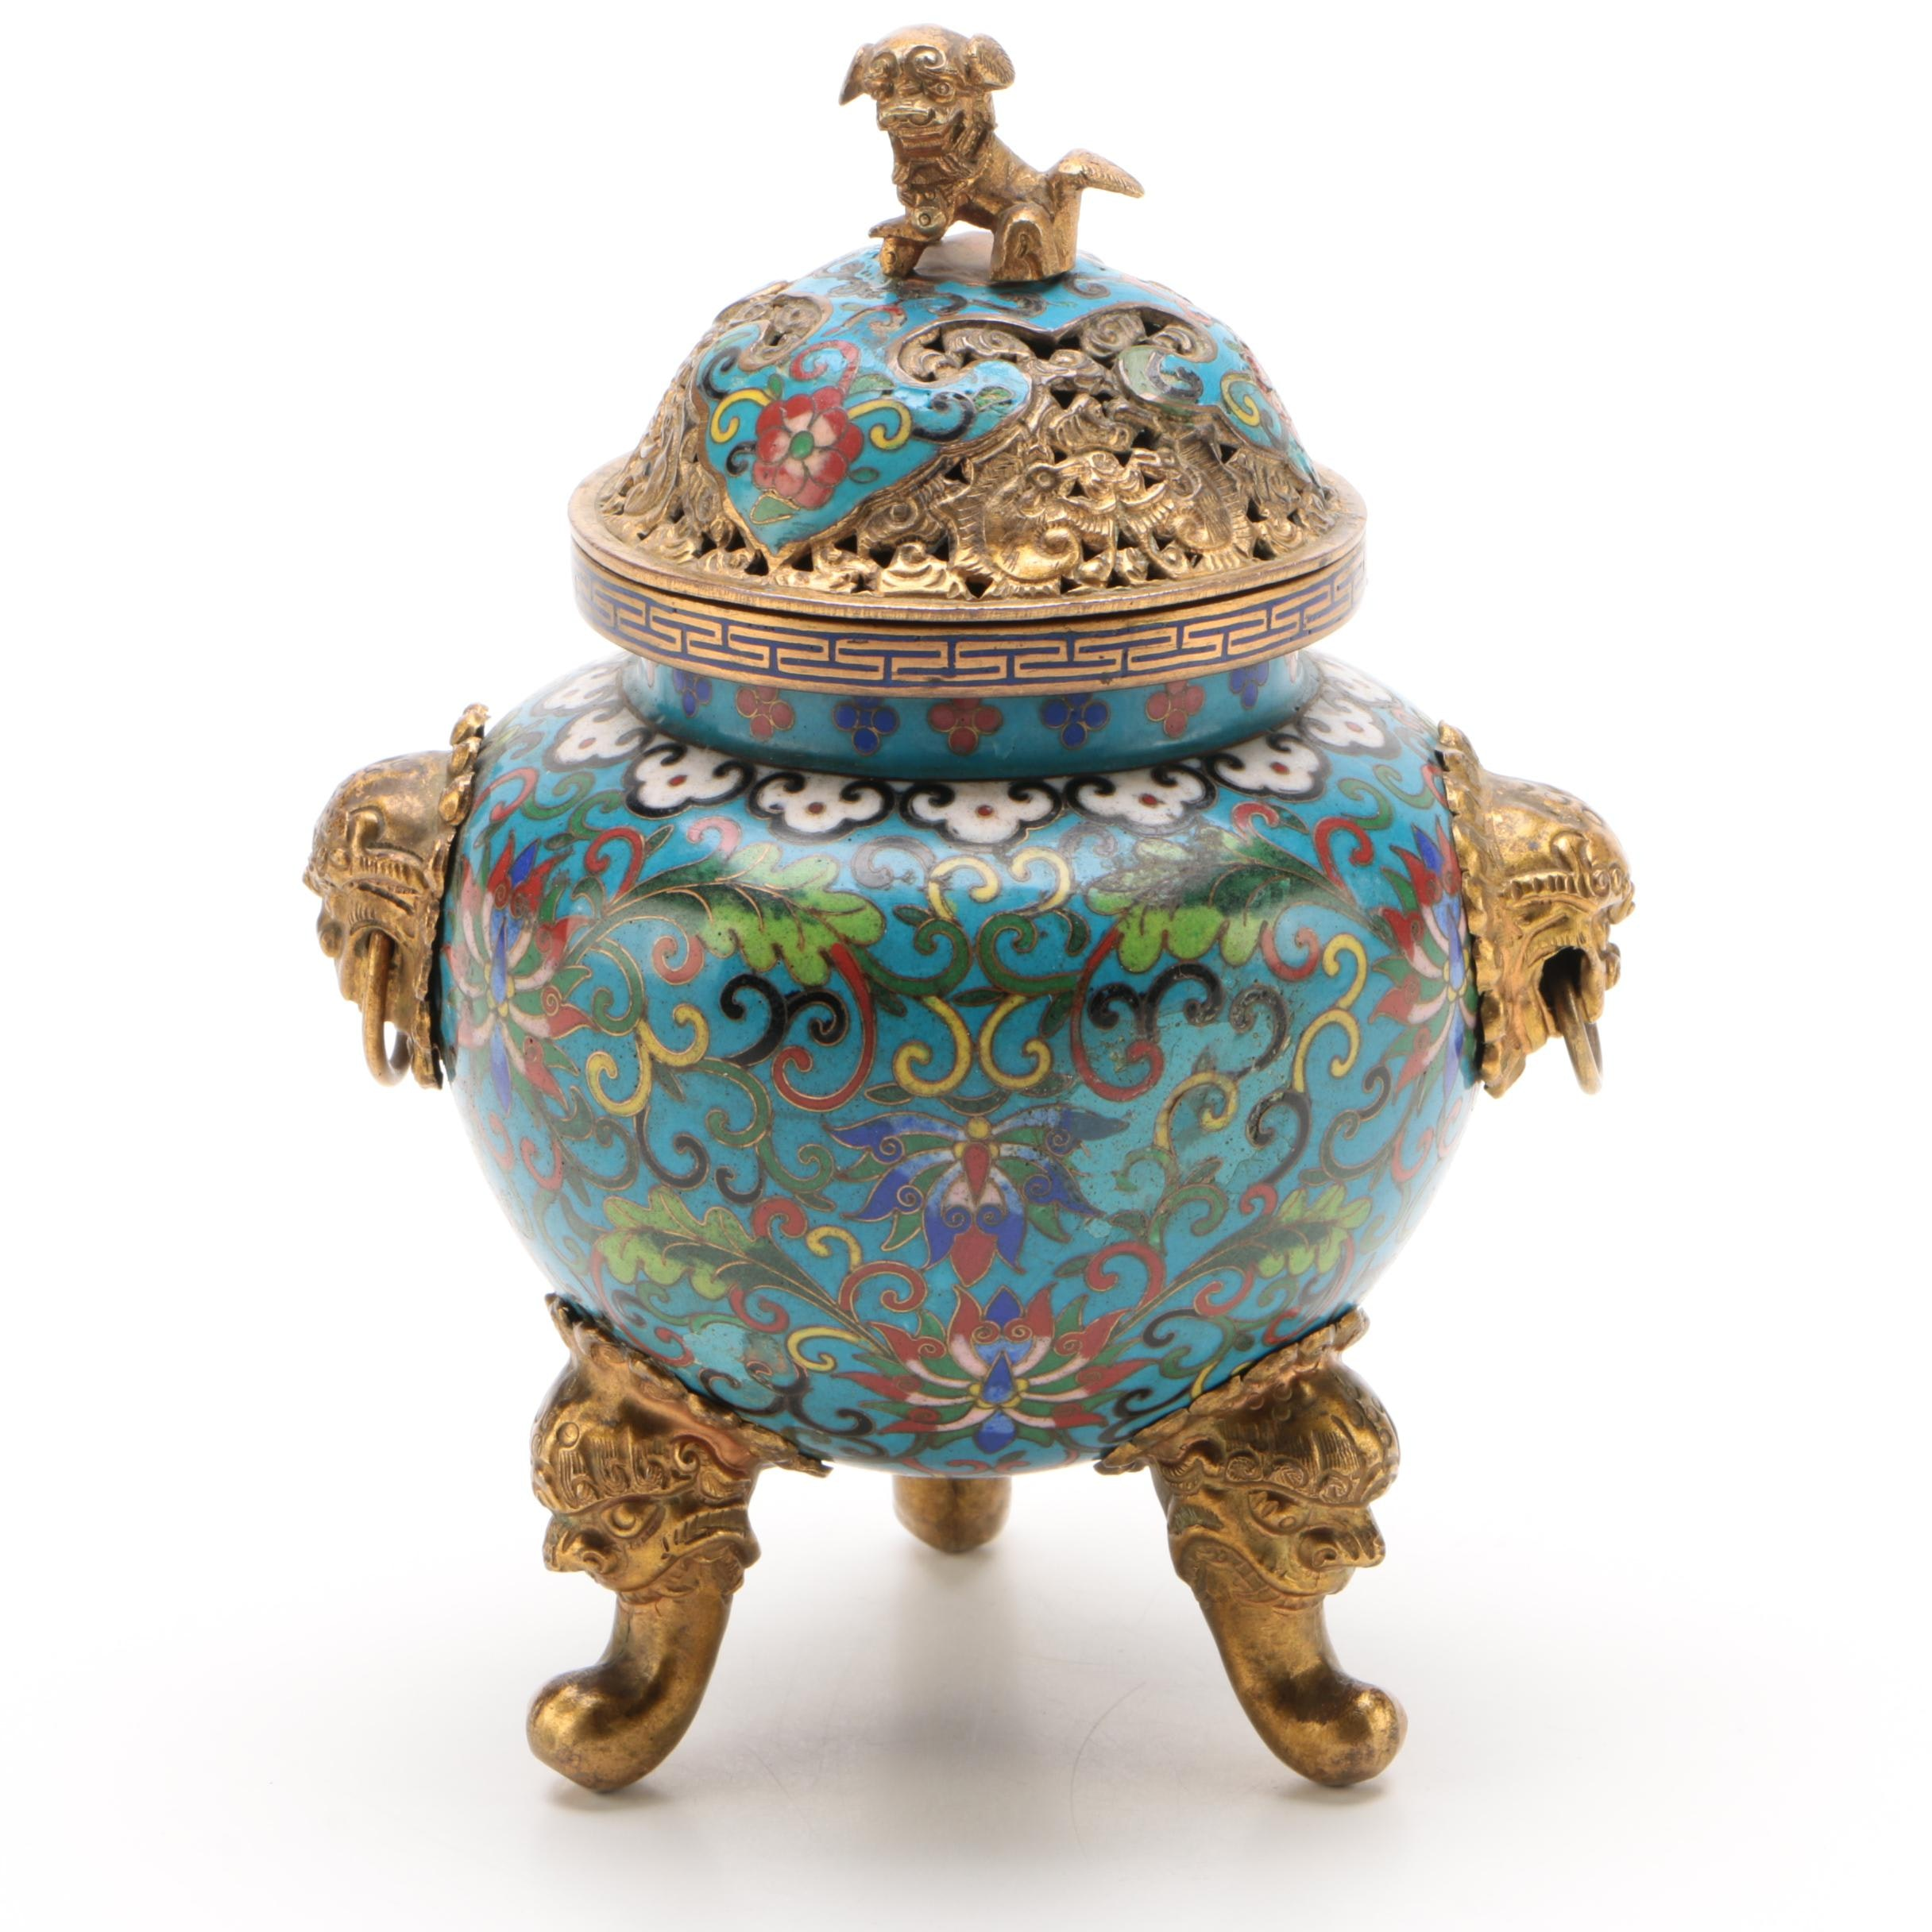 Chinese Cloisonné Gilt Metal Censer, Qing dynasty